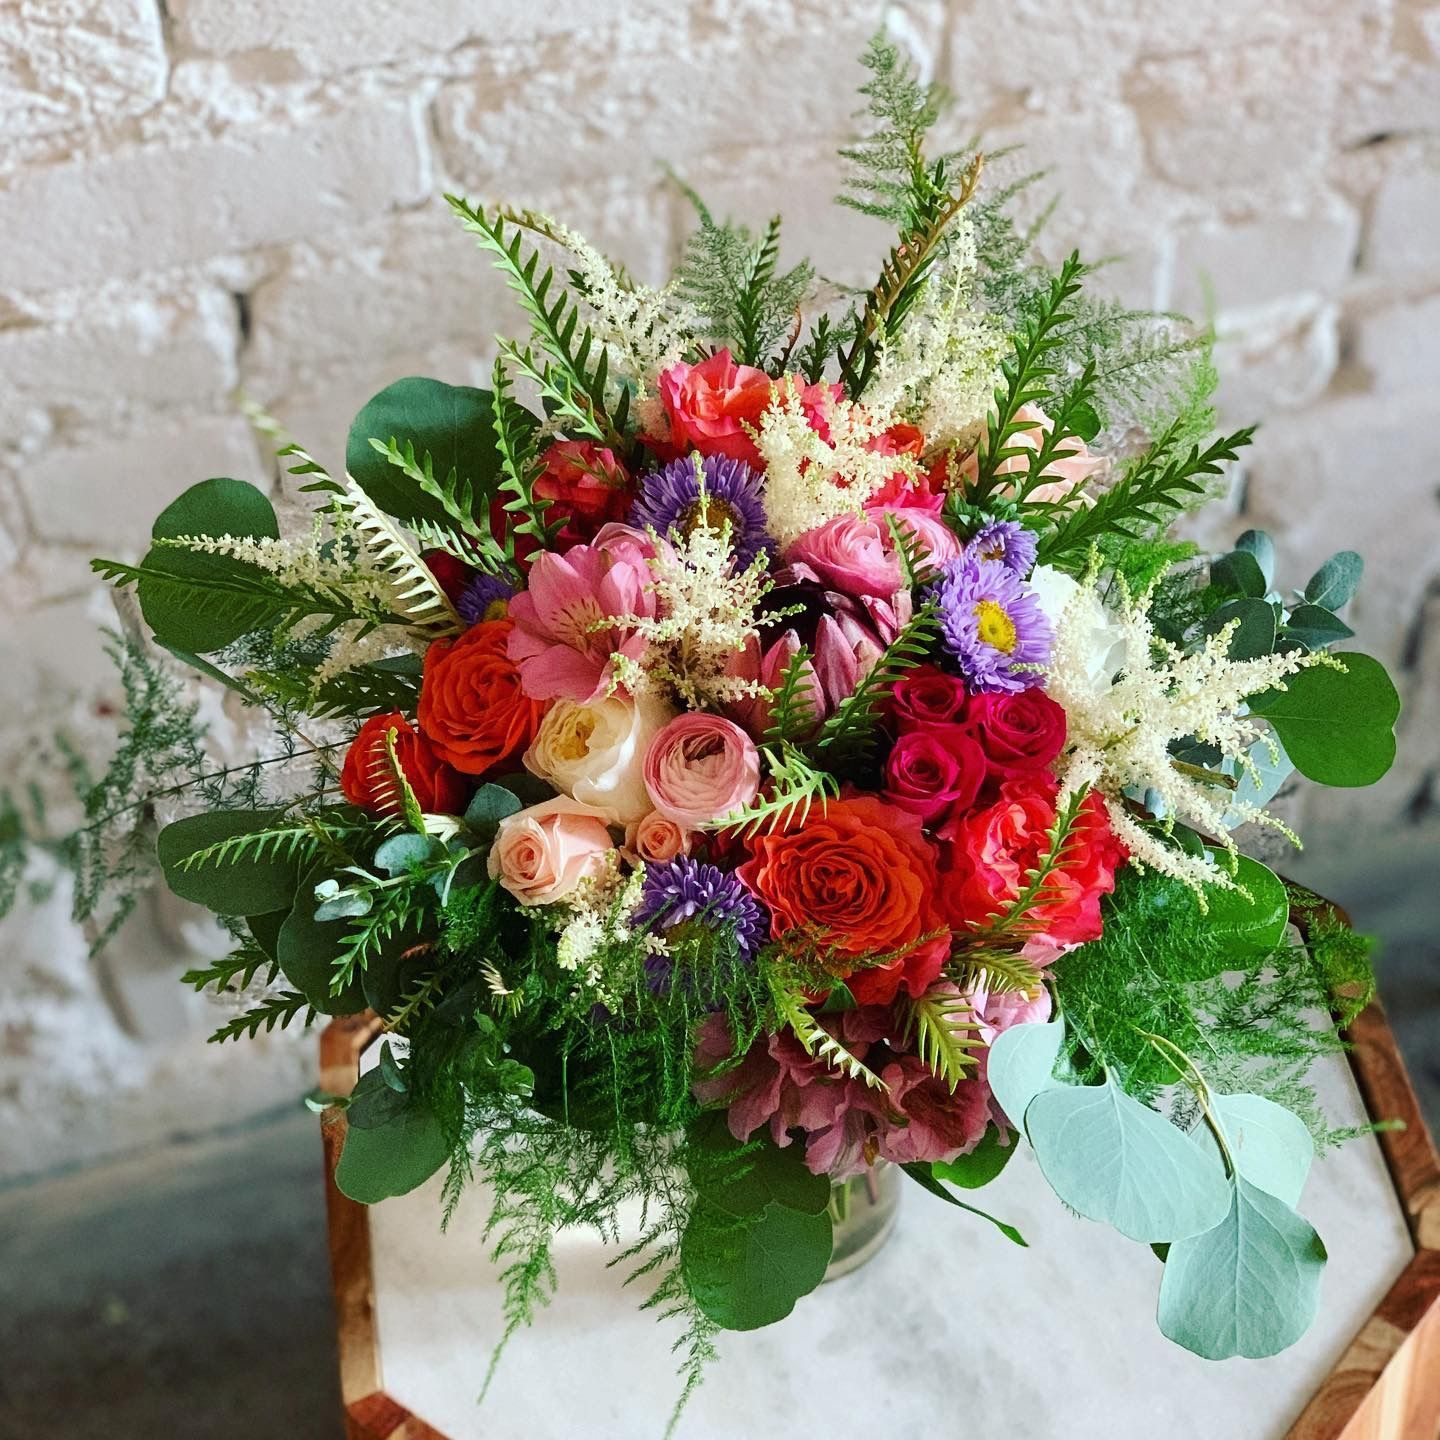 Colorful Wedding Bouquet  #astilbebouquet Colorful bride's bouquet with roses, proteas, ranunculus, astilbe, ferns, eucalyptus. Flowers by Rhinestones and Roses #astilbebouquet